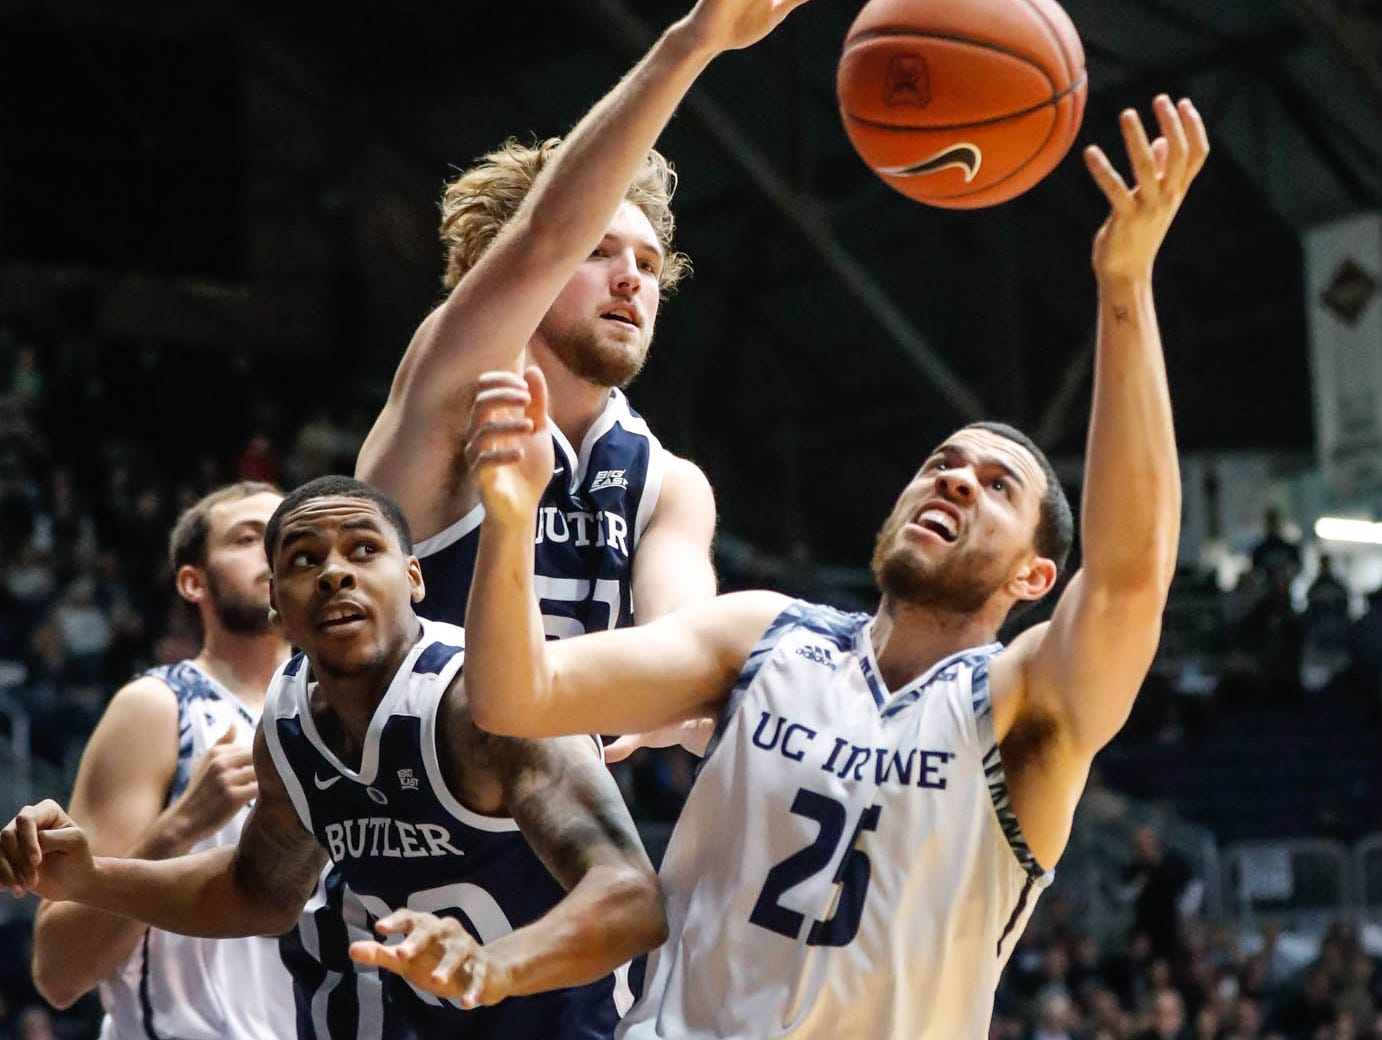 Butler University's center Joey Brunk (50), guard/forward Henry Baddley (20), and UC Irvine's guard Spencer Rivers (25) leap for a rebound during a game between Butler University and UC Irvine, at Hinkle Fieldhouse on Friday, Dec. 21, 2018.